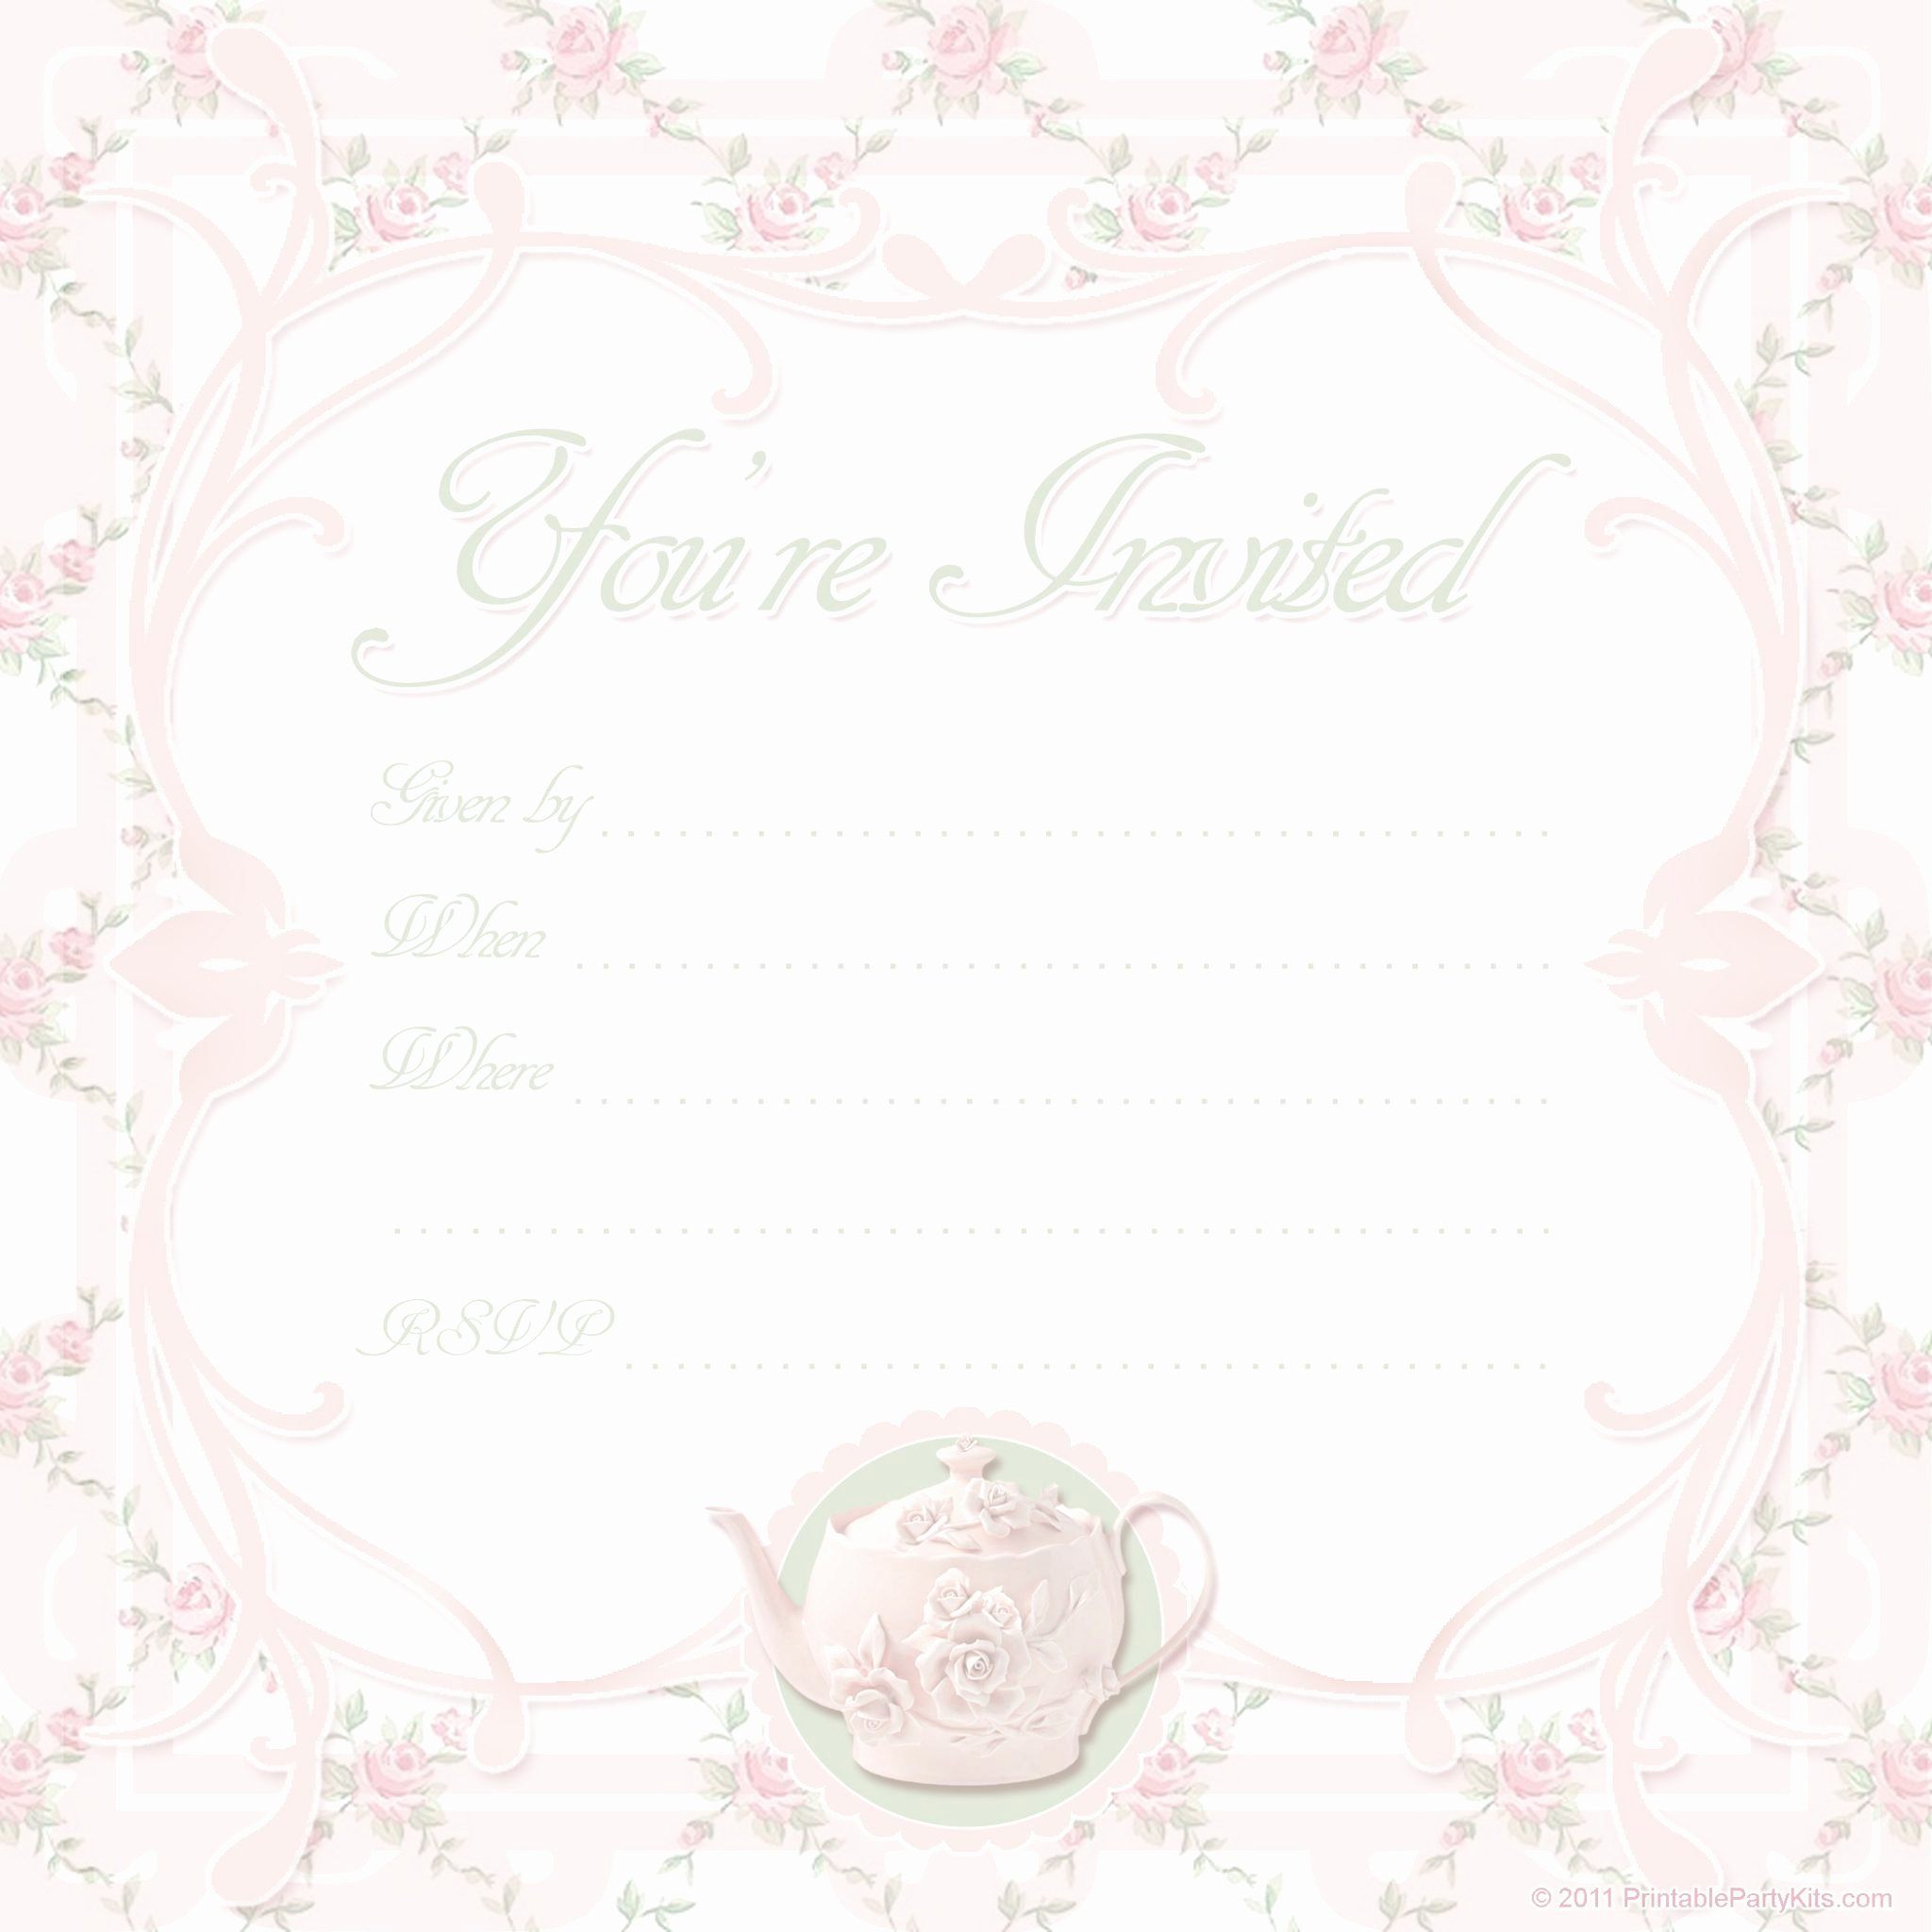 Tea Party Invitation Template Luxury Free Printable Tea Party Invite Template